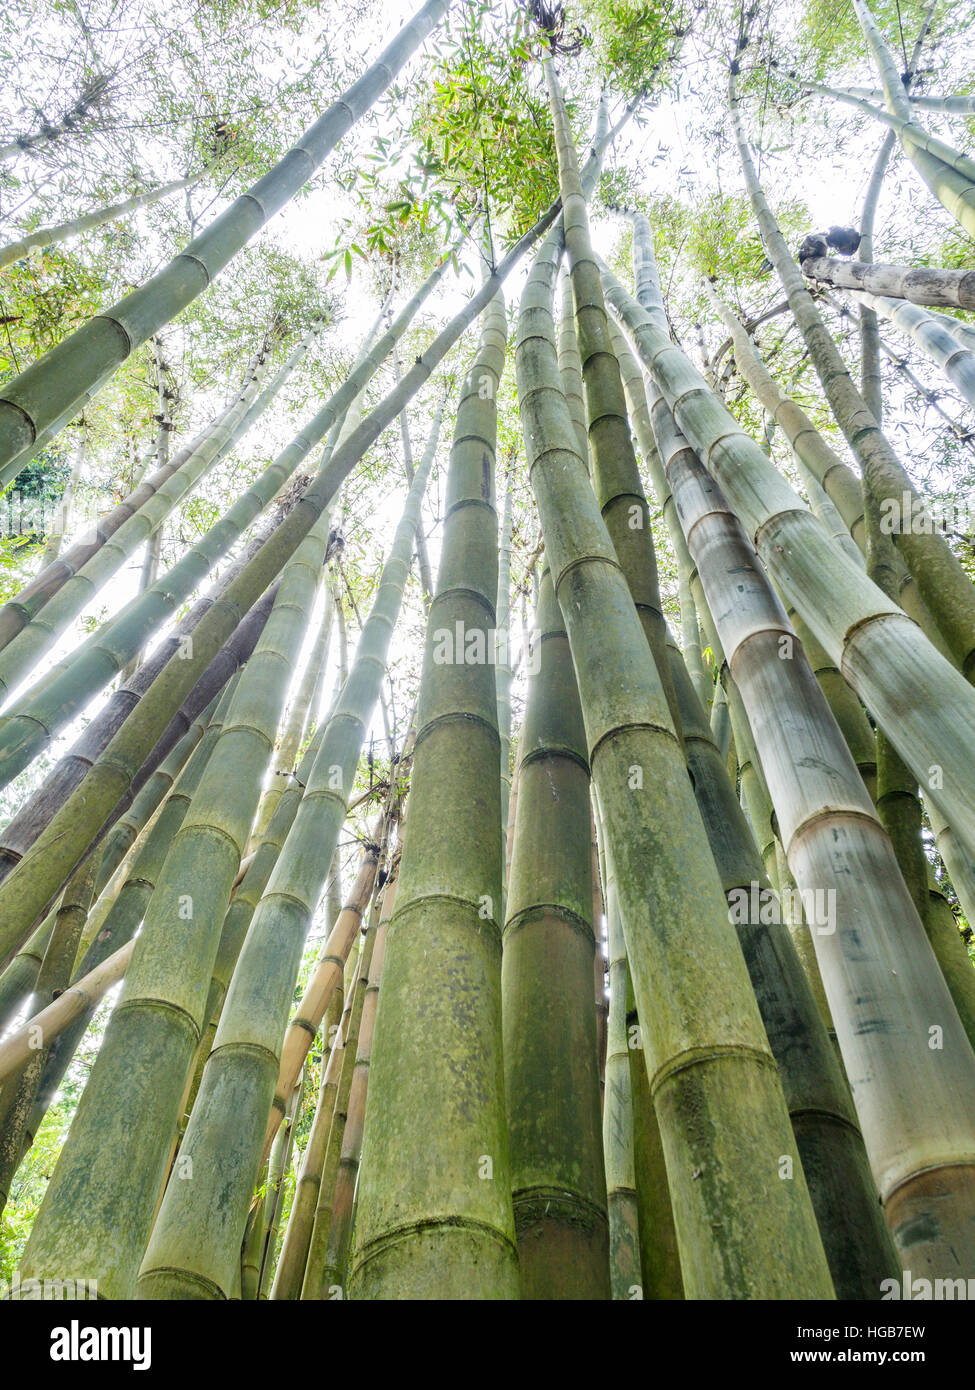 Grove of Giant Bamboo from below. A grove of green and growing bamboo pictured from below showing the segmented - Stock Image